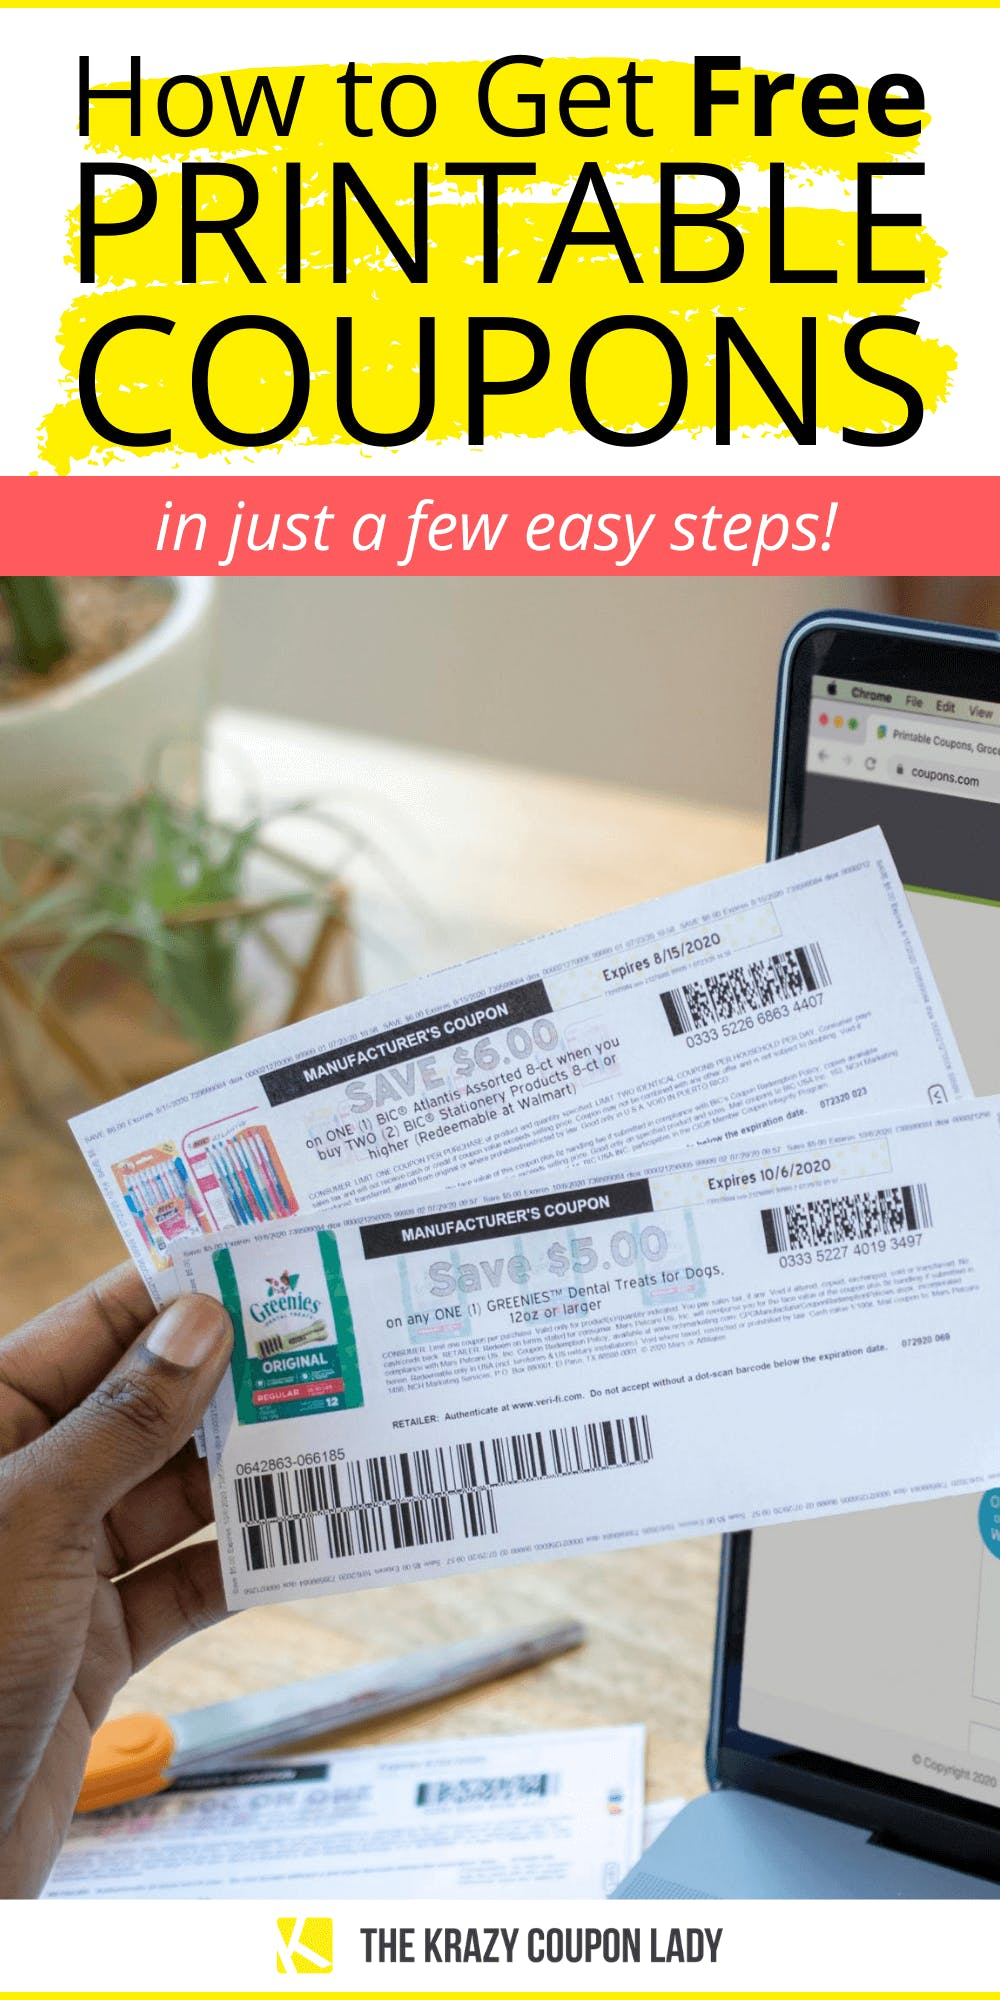 Get Free Printable Coupons In A Few Easy Steps The Krazy Coupon Lady